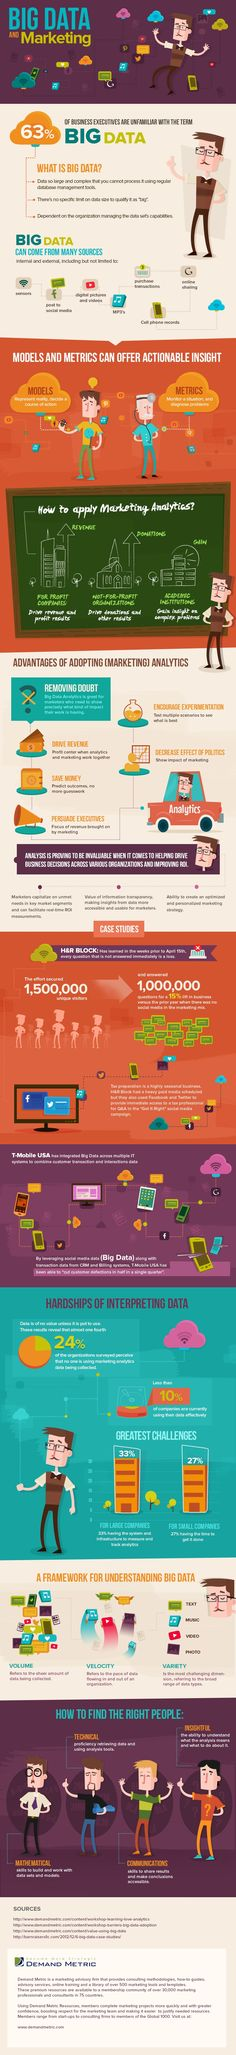 Infographic: The Role Of Big Data In Marketing